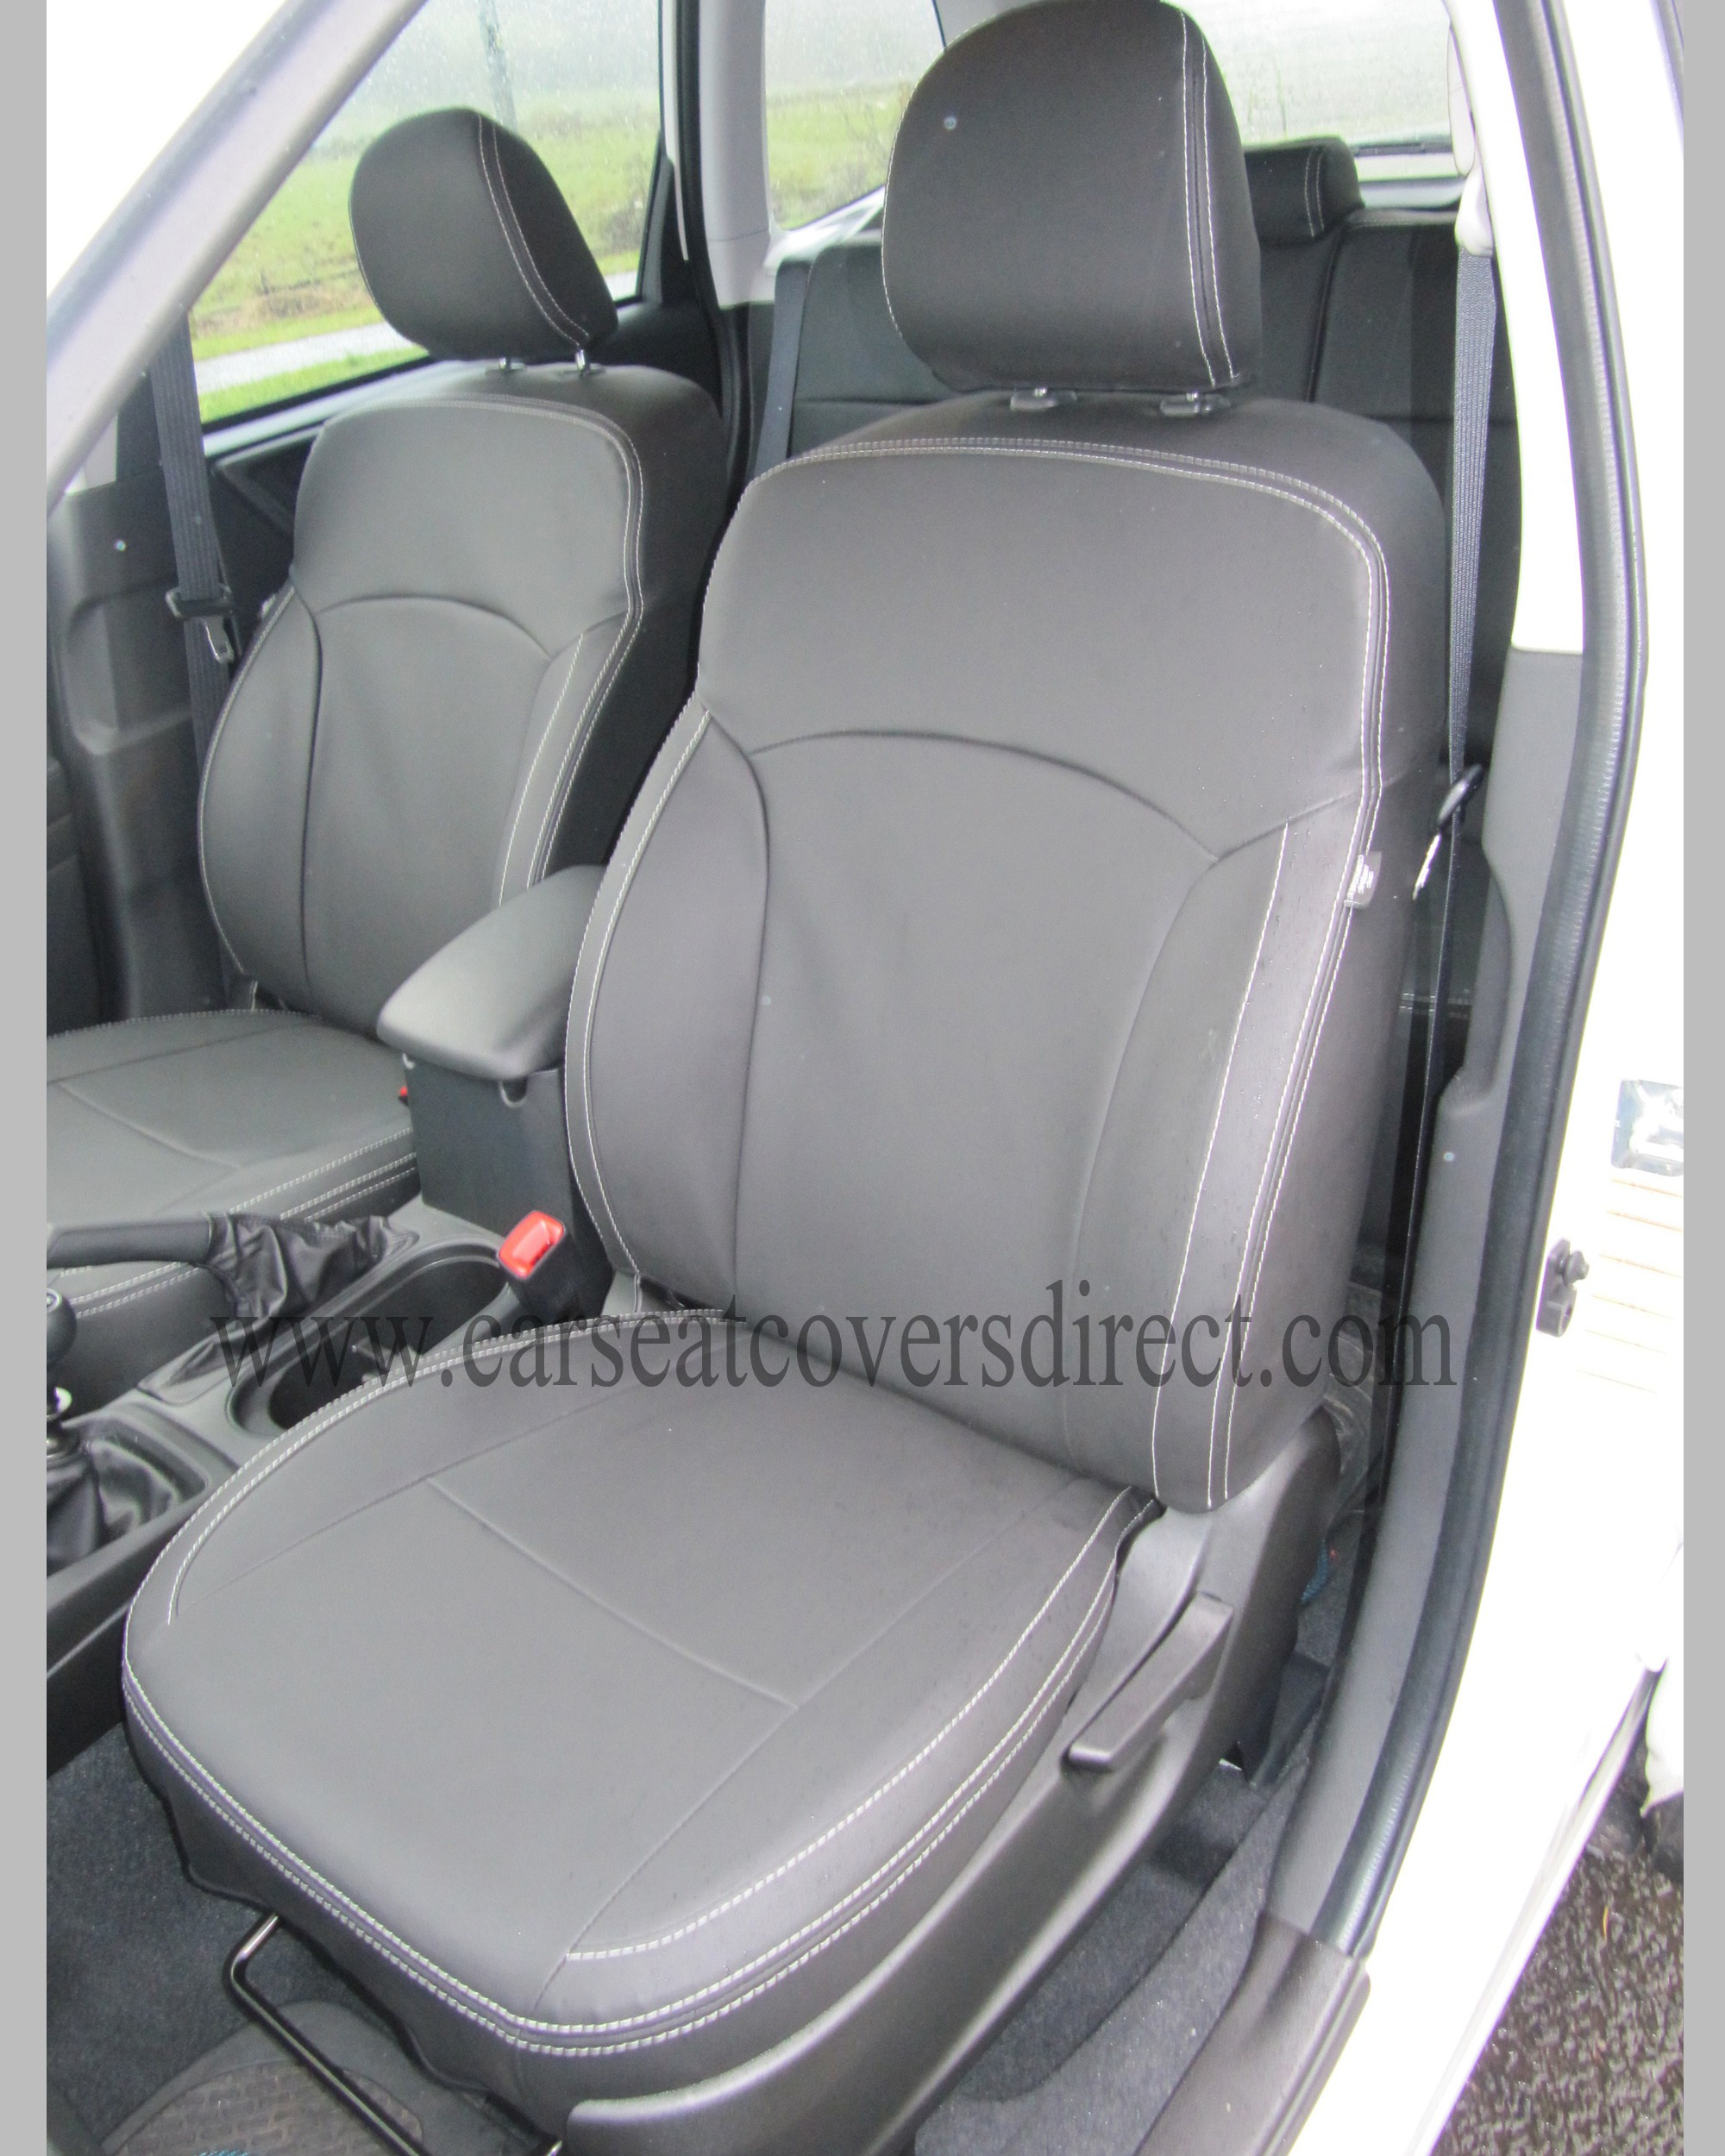 custom subaru forester seat covers custom car seat covers custom tailored seat covers car. Black Bedroom Furniture Sets. Home Design Ideas